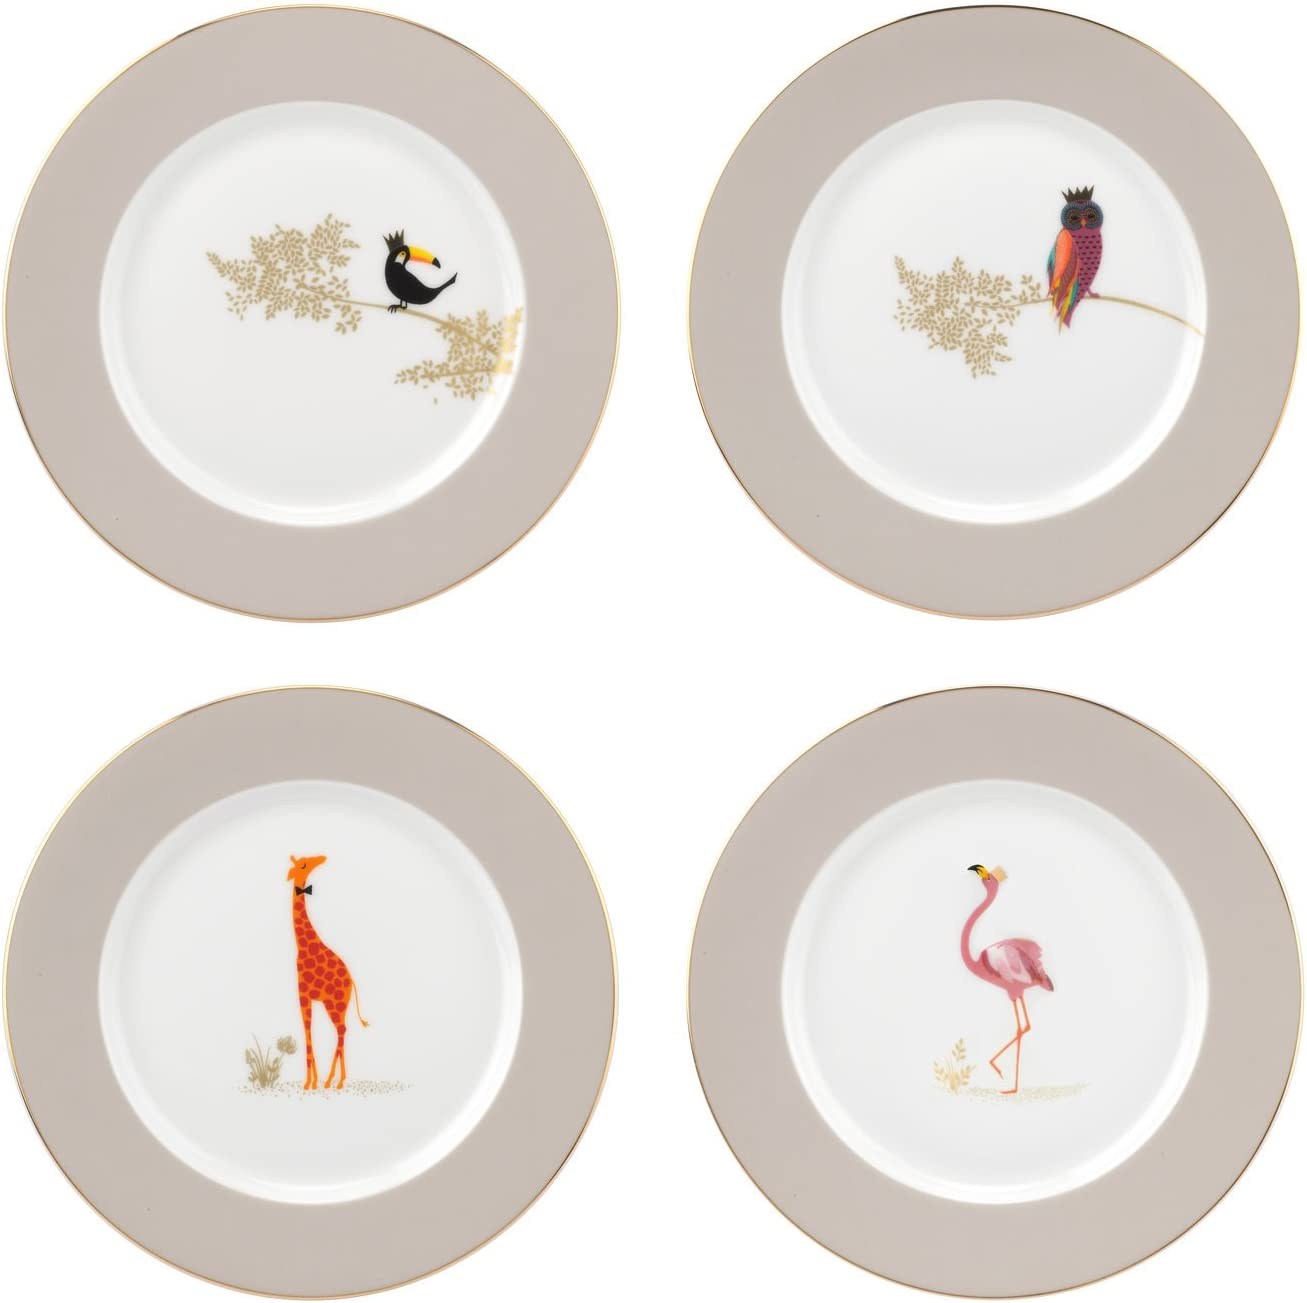 "Portmeirion Home & Gifts Piccadilly 8"" Plates Set of 4, Ceramic, Multi-Colour, 23 x 23 x 5.5 cm"